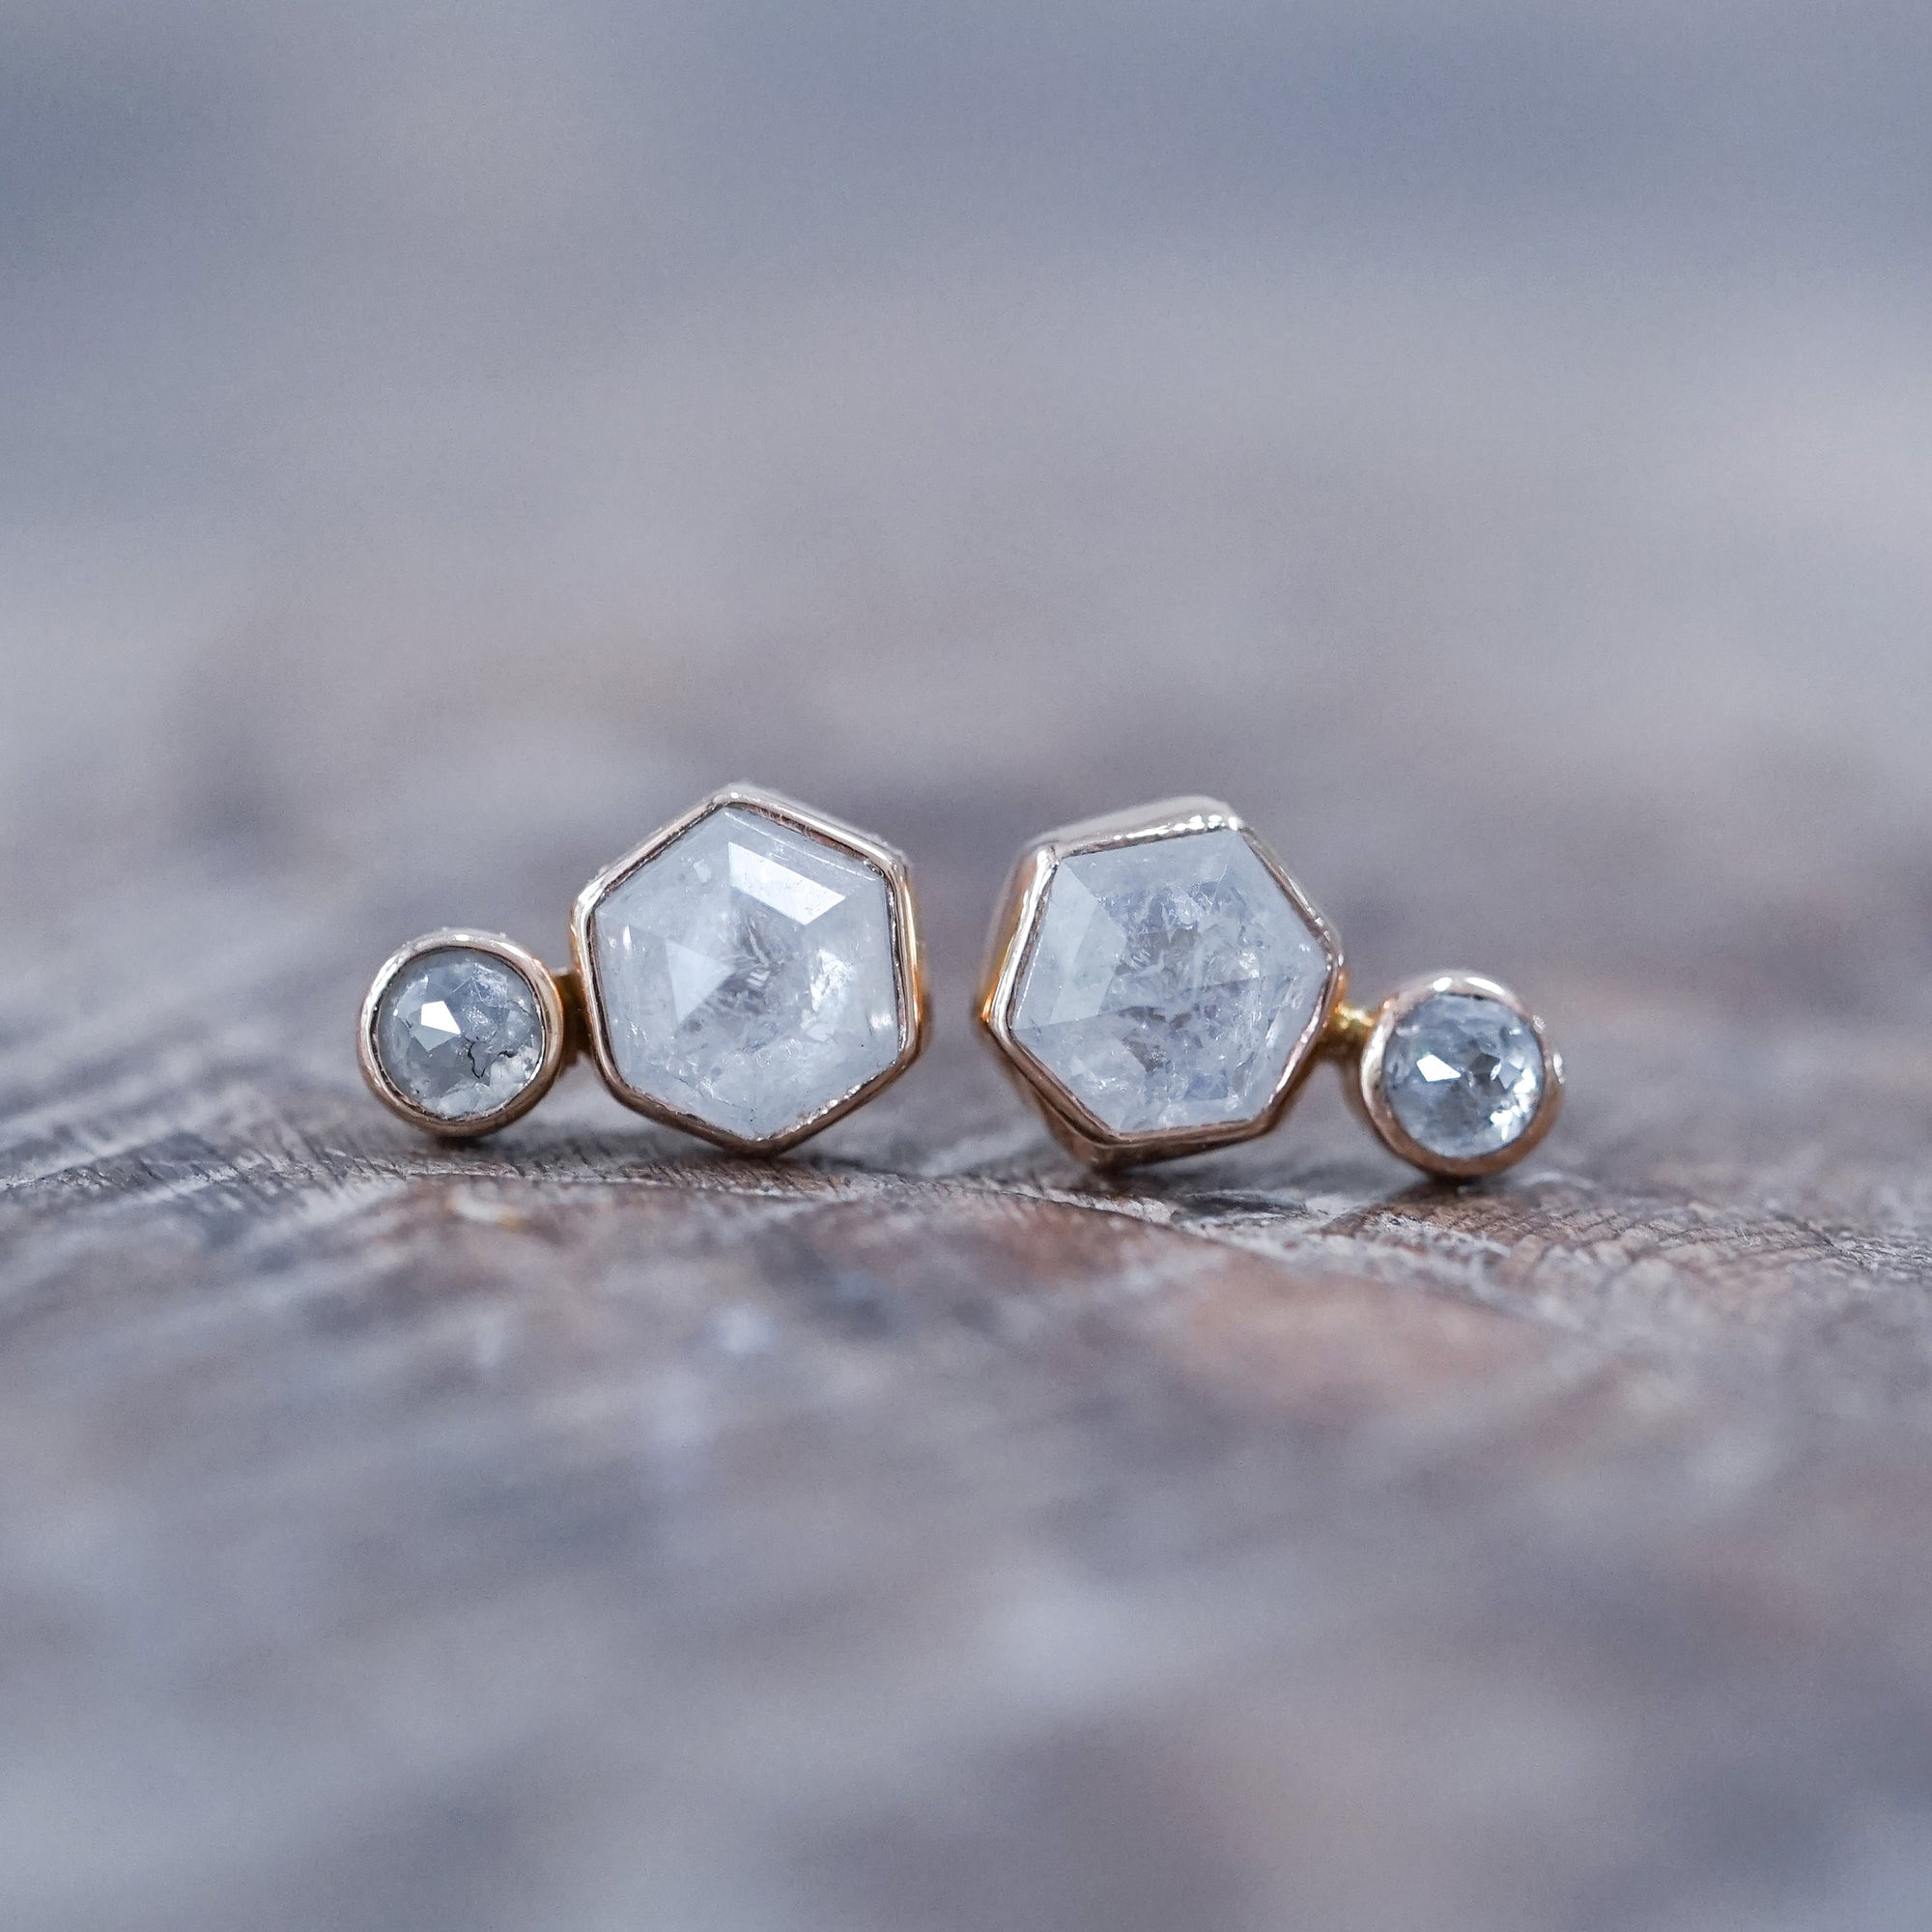 Rose Cut Hexagon Diamond Earrings in Rose Gold